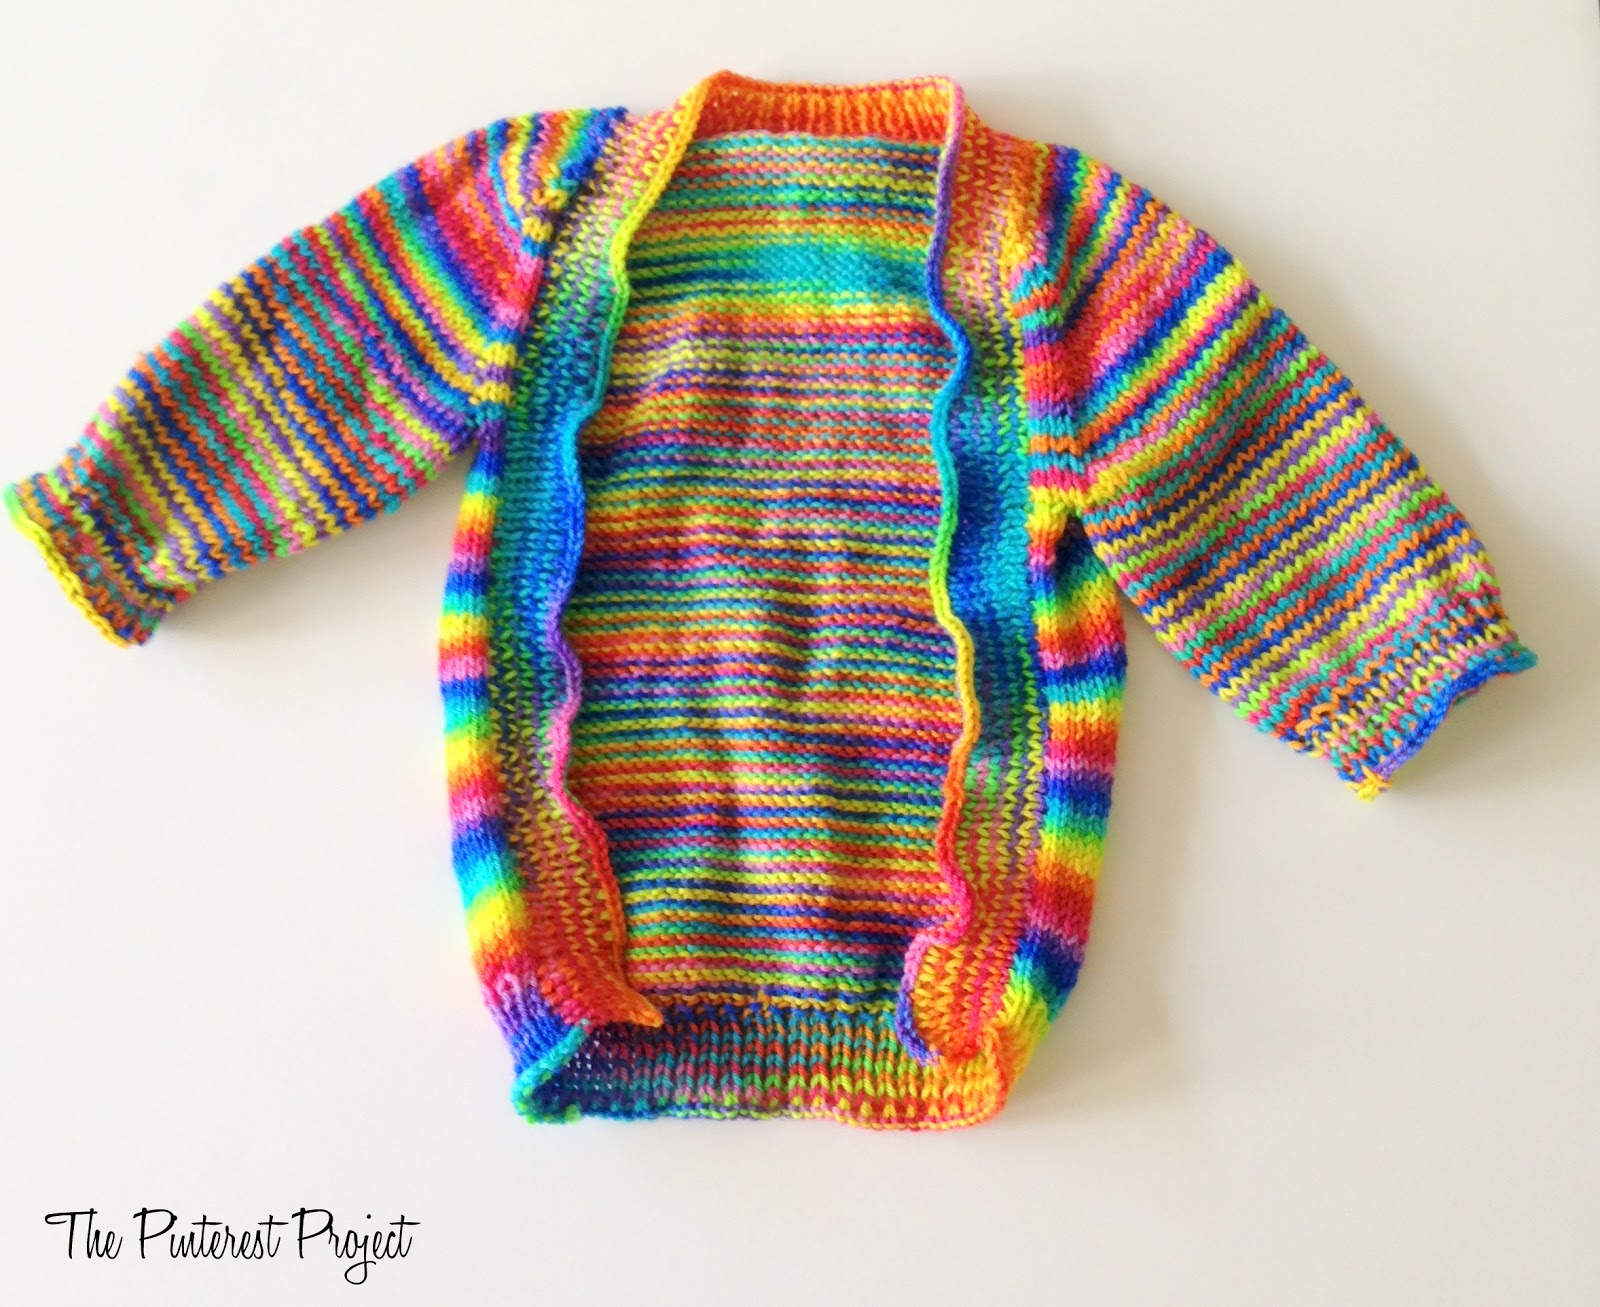 The Continued Ramblings of a Knitter | The Pinterest Project